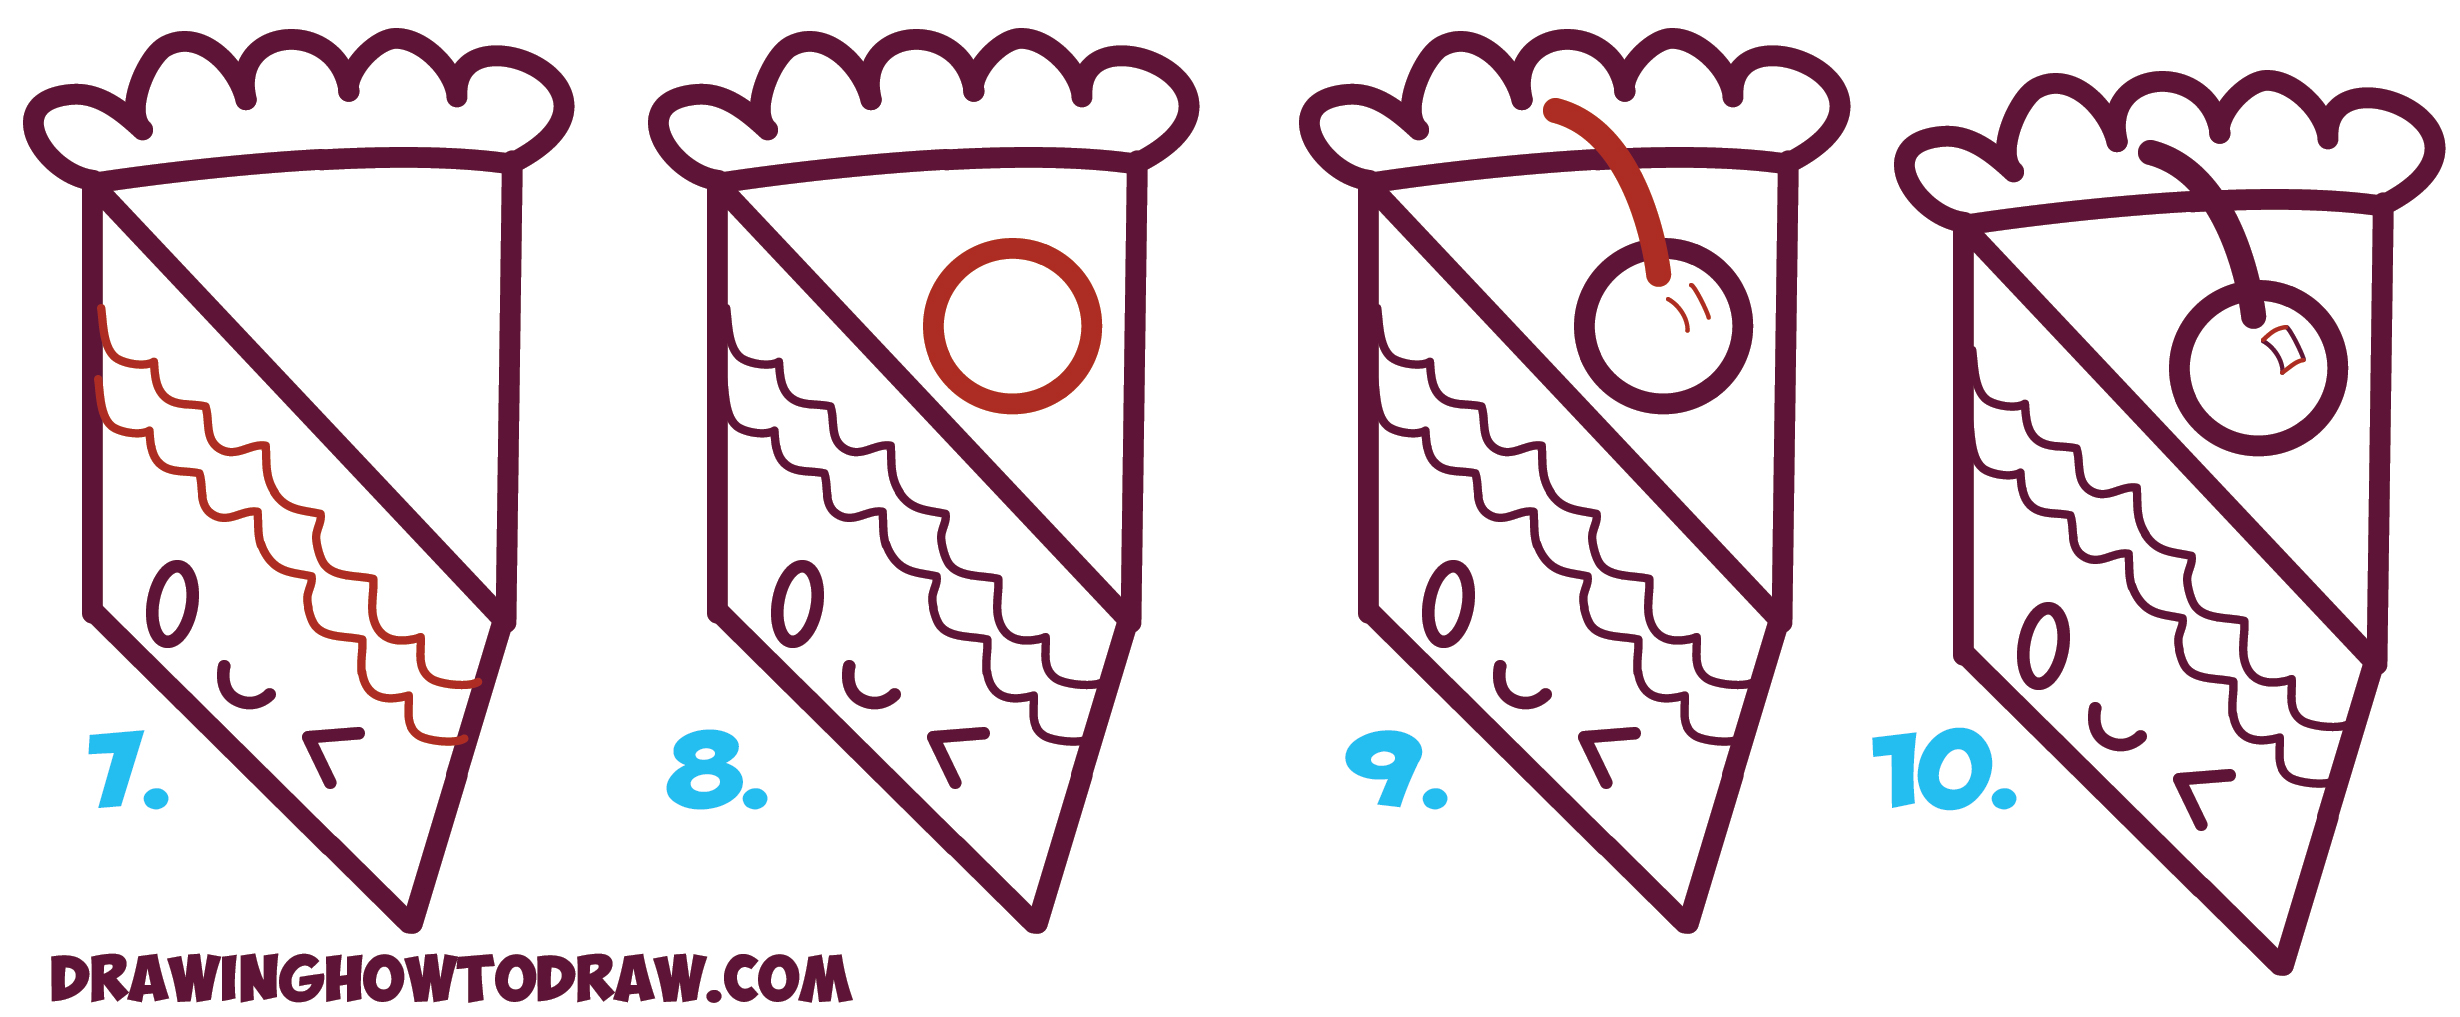 Learn How To Draw A Cute Kawaii Piece Of Cake With A Face On It From